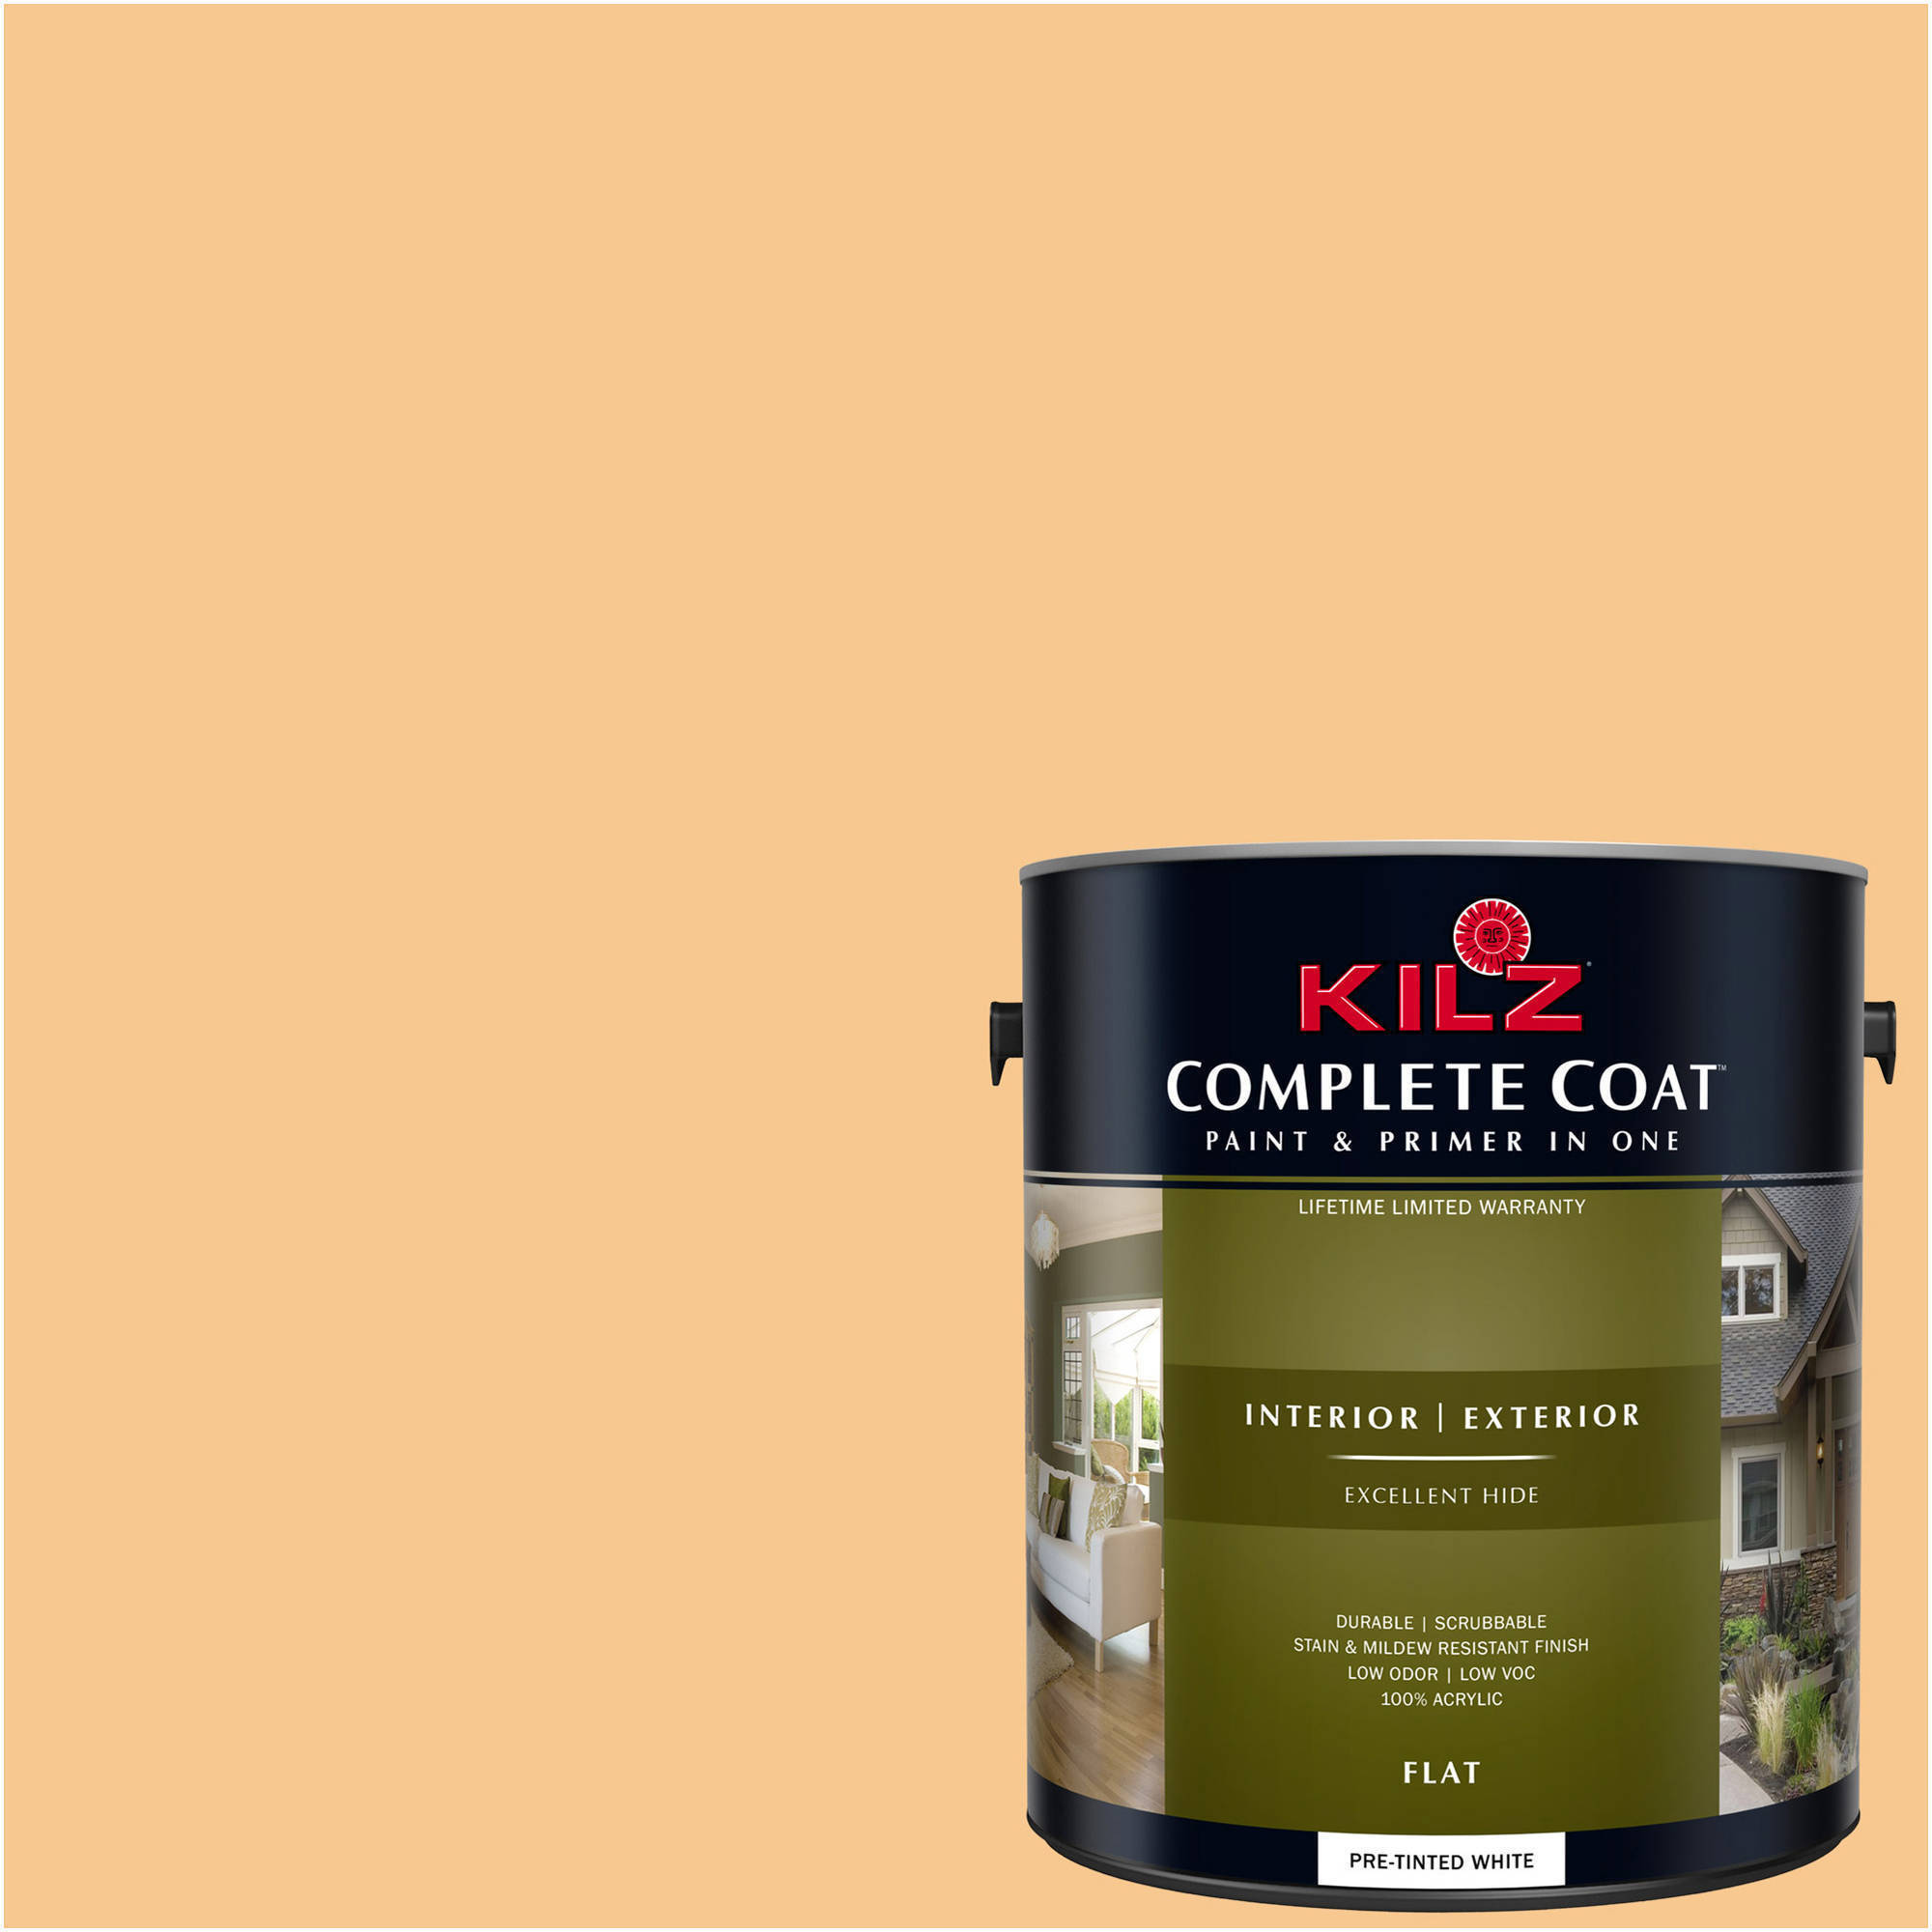 KILZ COMPLETE COAT Interior/Exterior Paint & Primer in One #LD270-01 Jolly